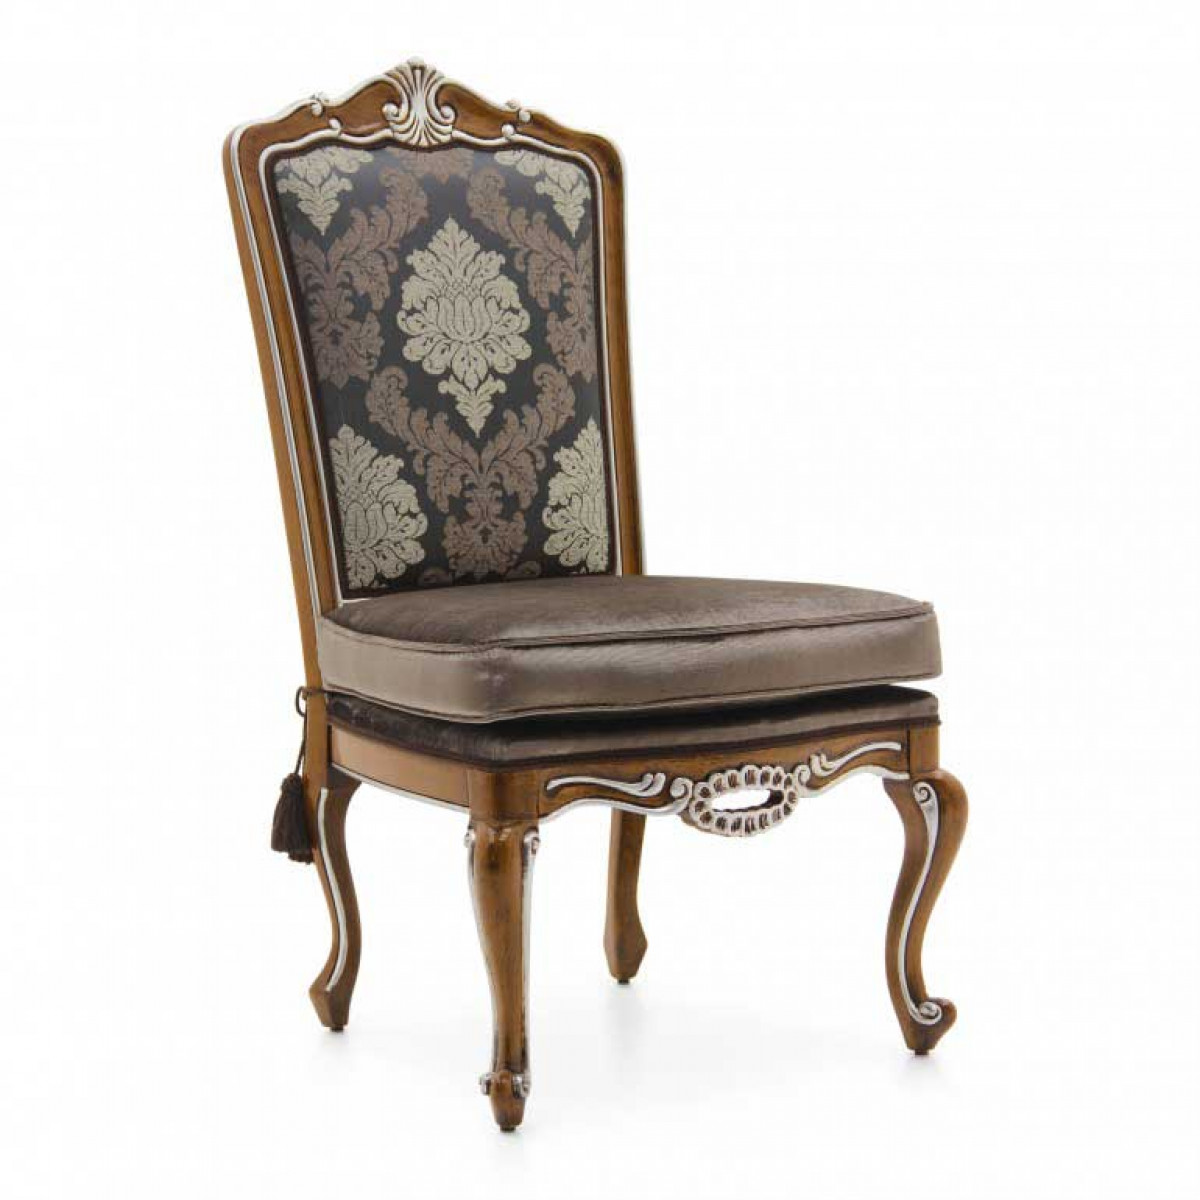 Italian classic chair Vienna, designed for contract use by Sevensedie